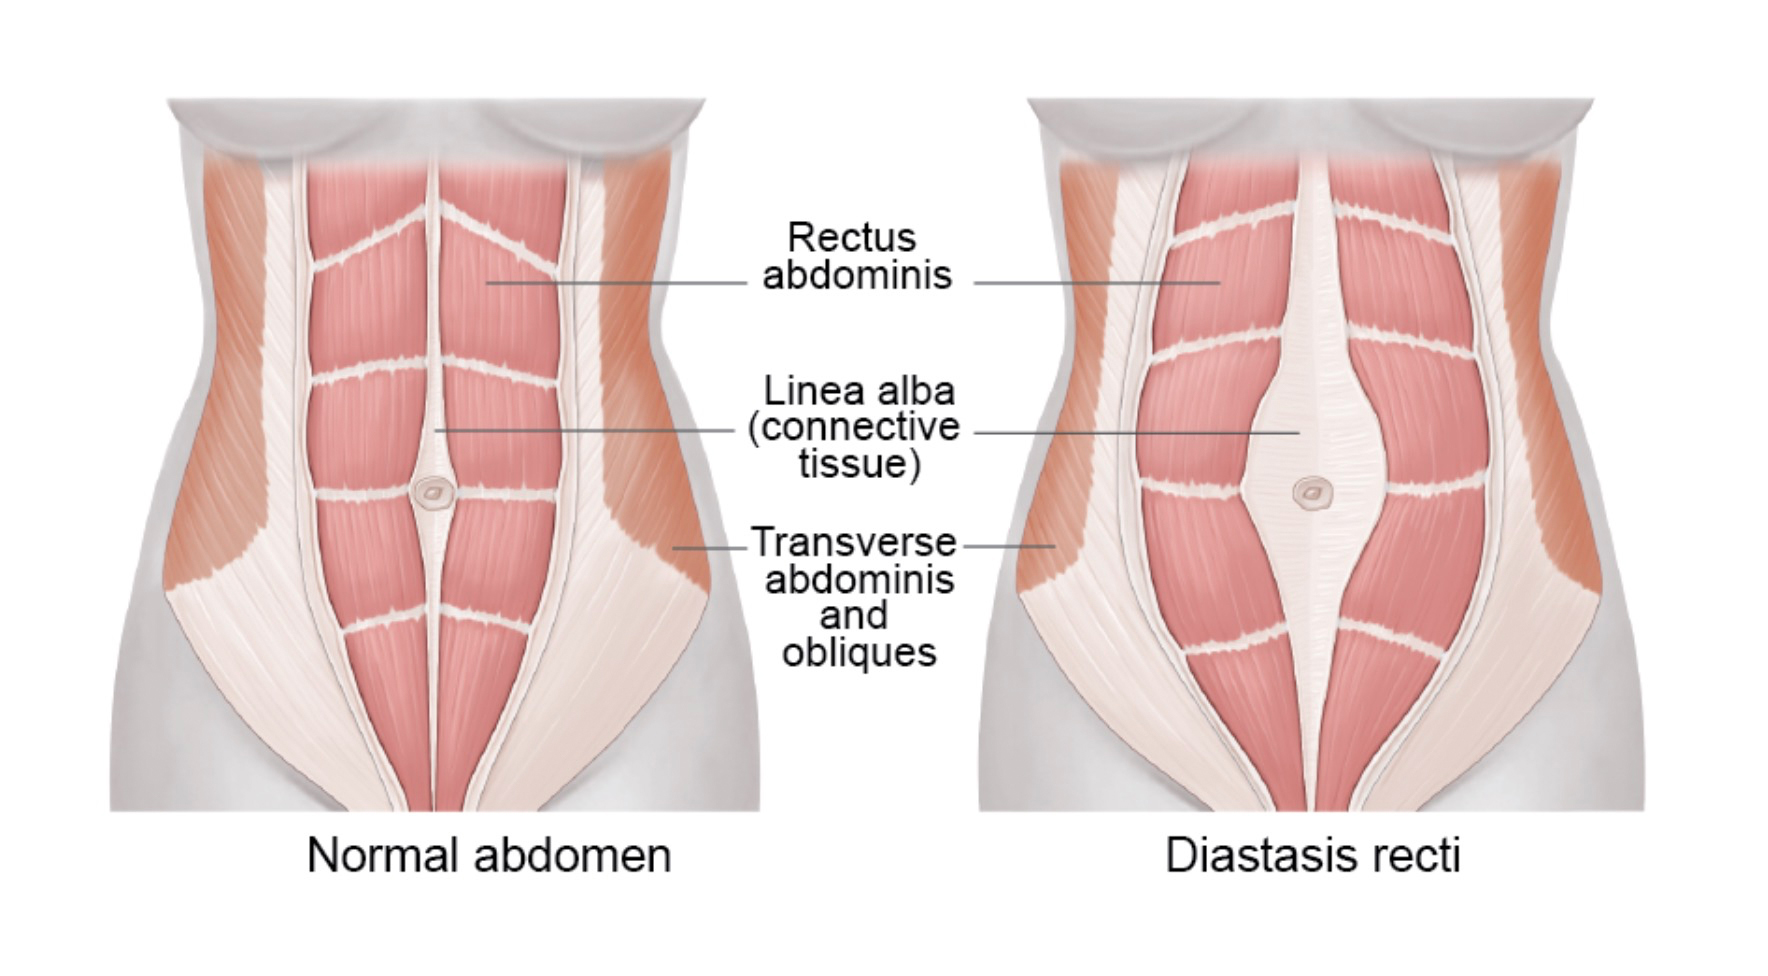 graphic showing abdominal diastasis